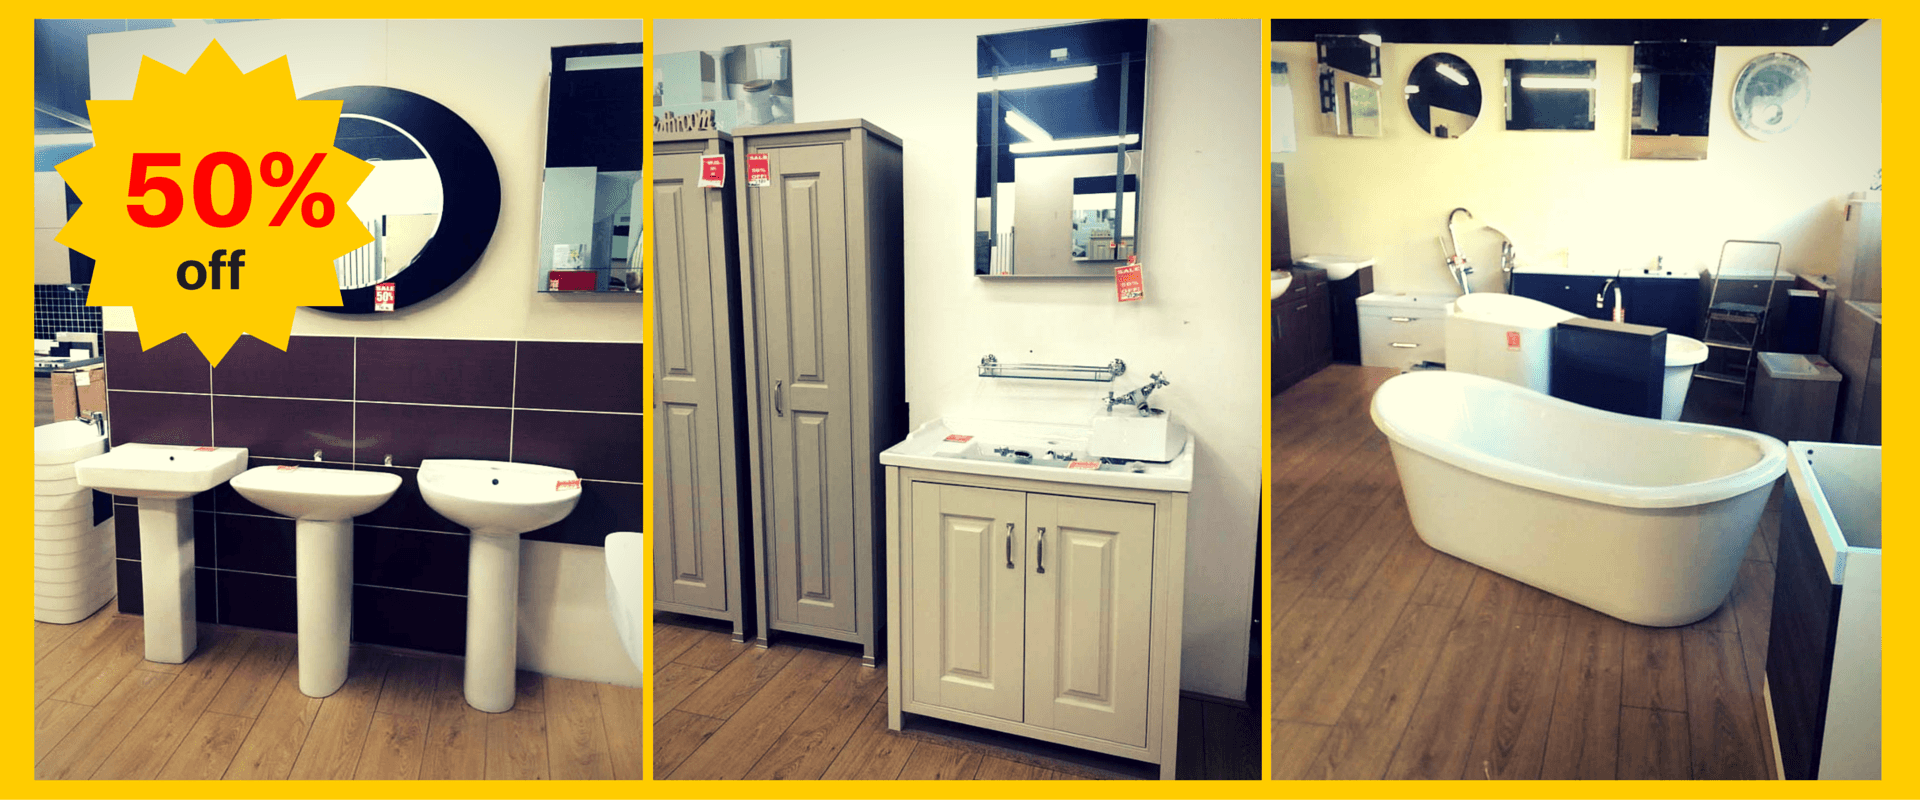 Quality bathroom furniture uk - We Are Known For Our High Quality Bathroom Suites At Unbeatable Prices